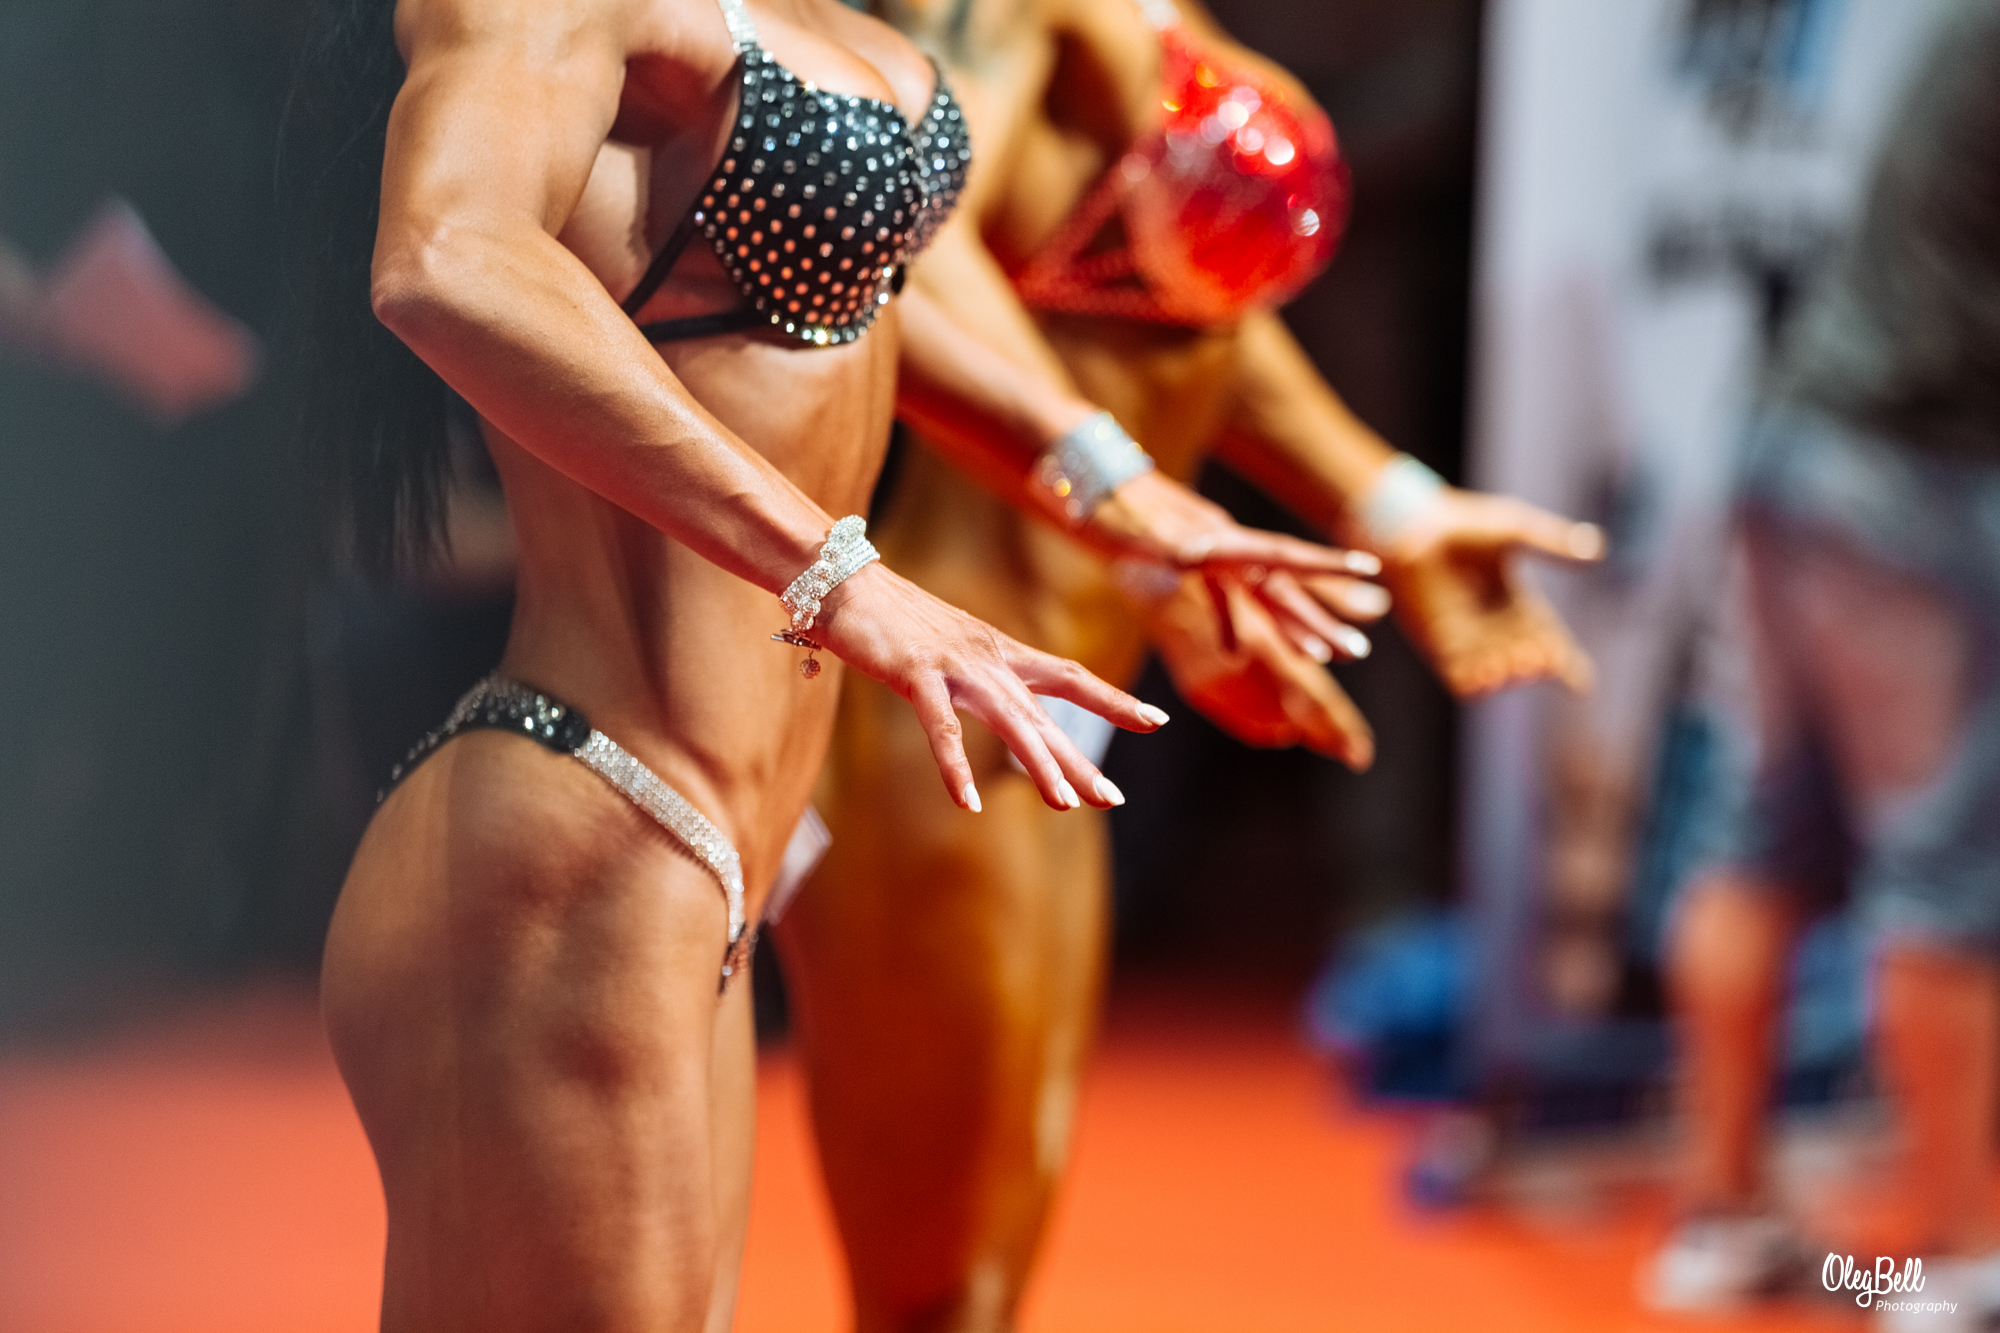 NICOLE_BODYBUILDING_COMPETITIONS_0586.jpg